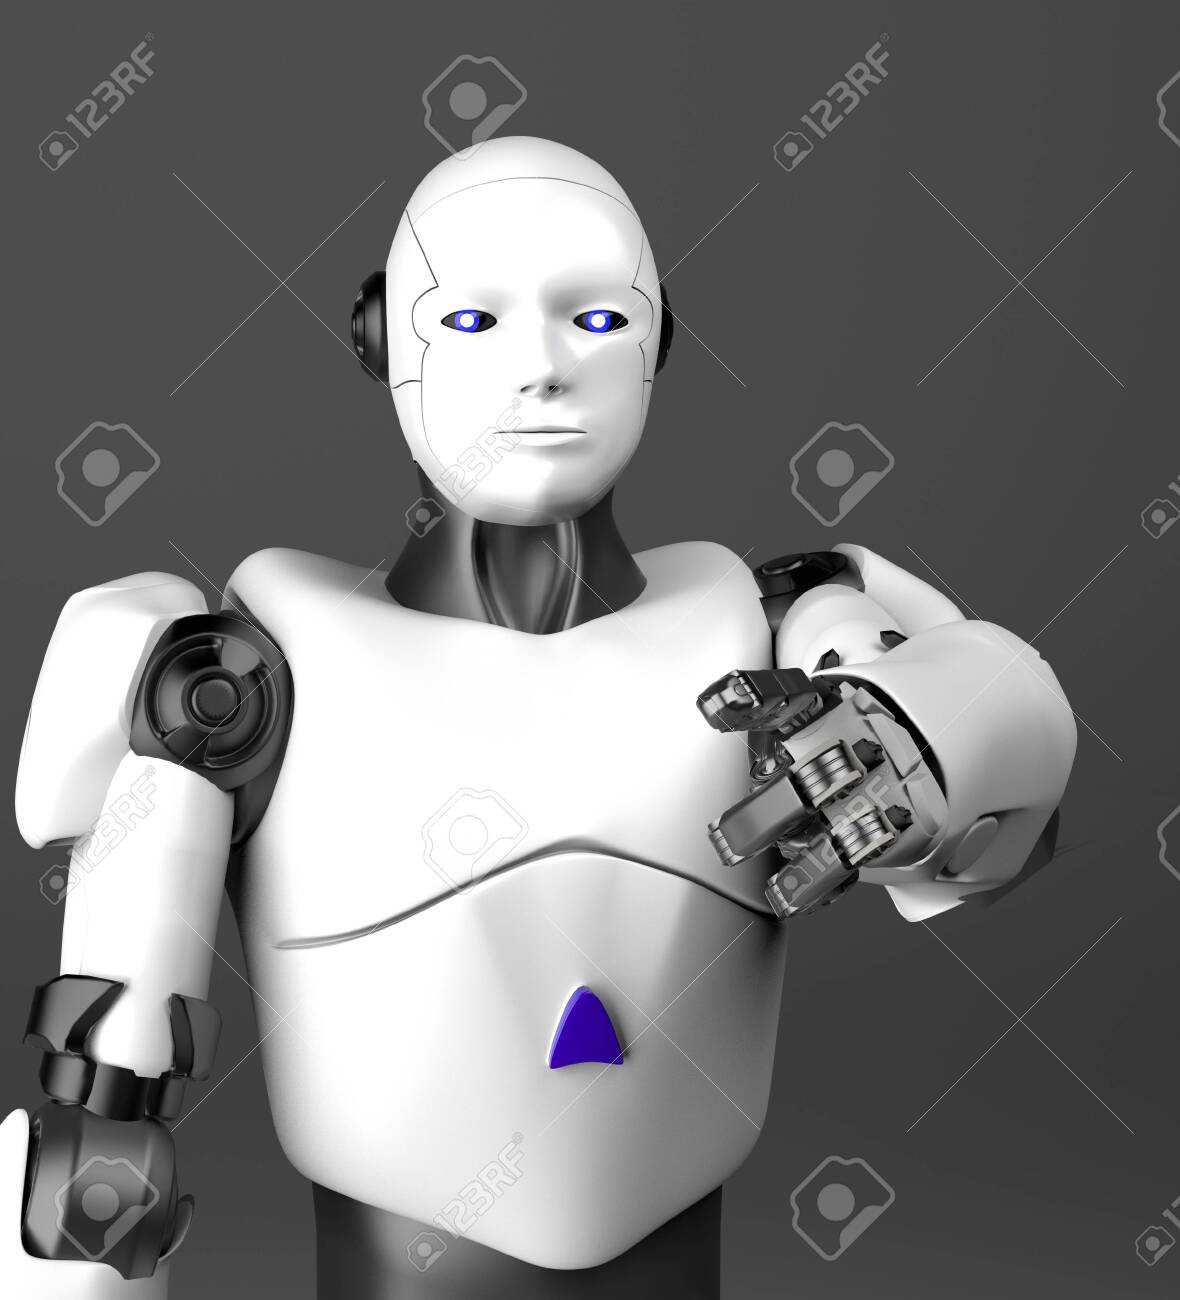 The white humanoid robot points a finger,3d render. - 143670187